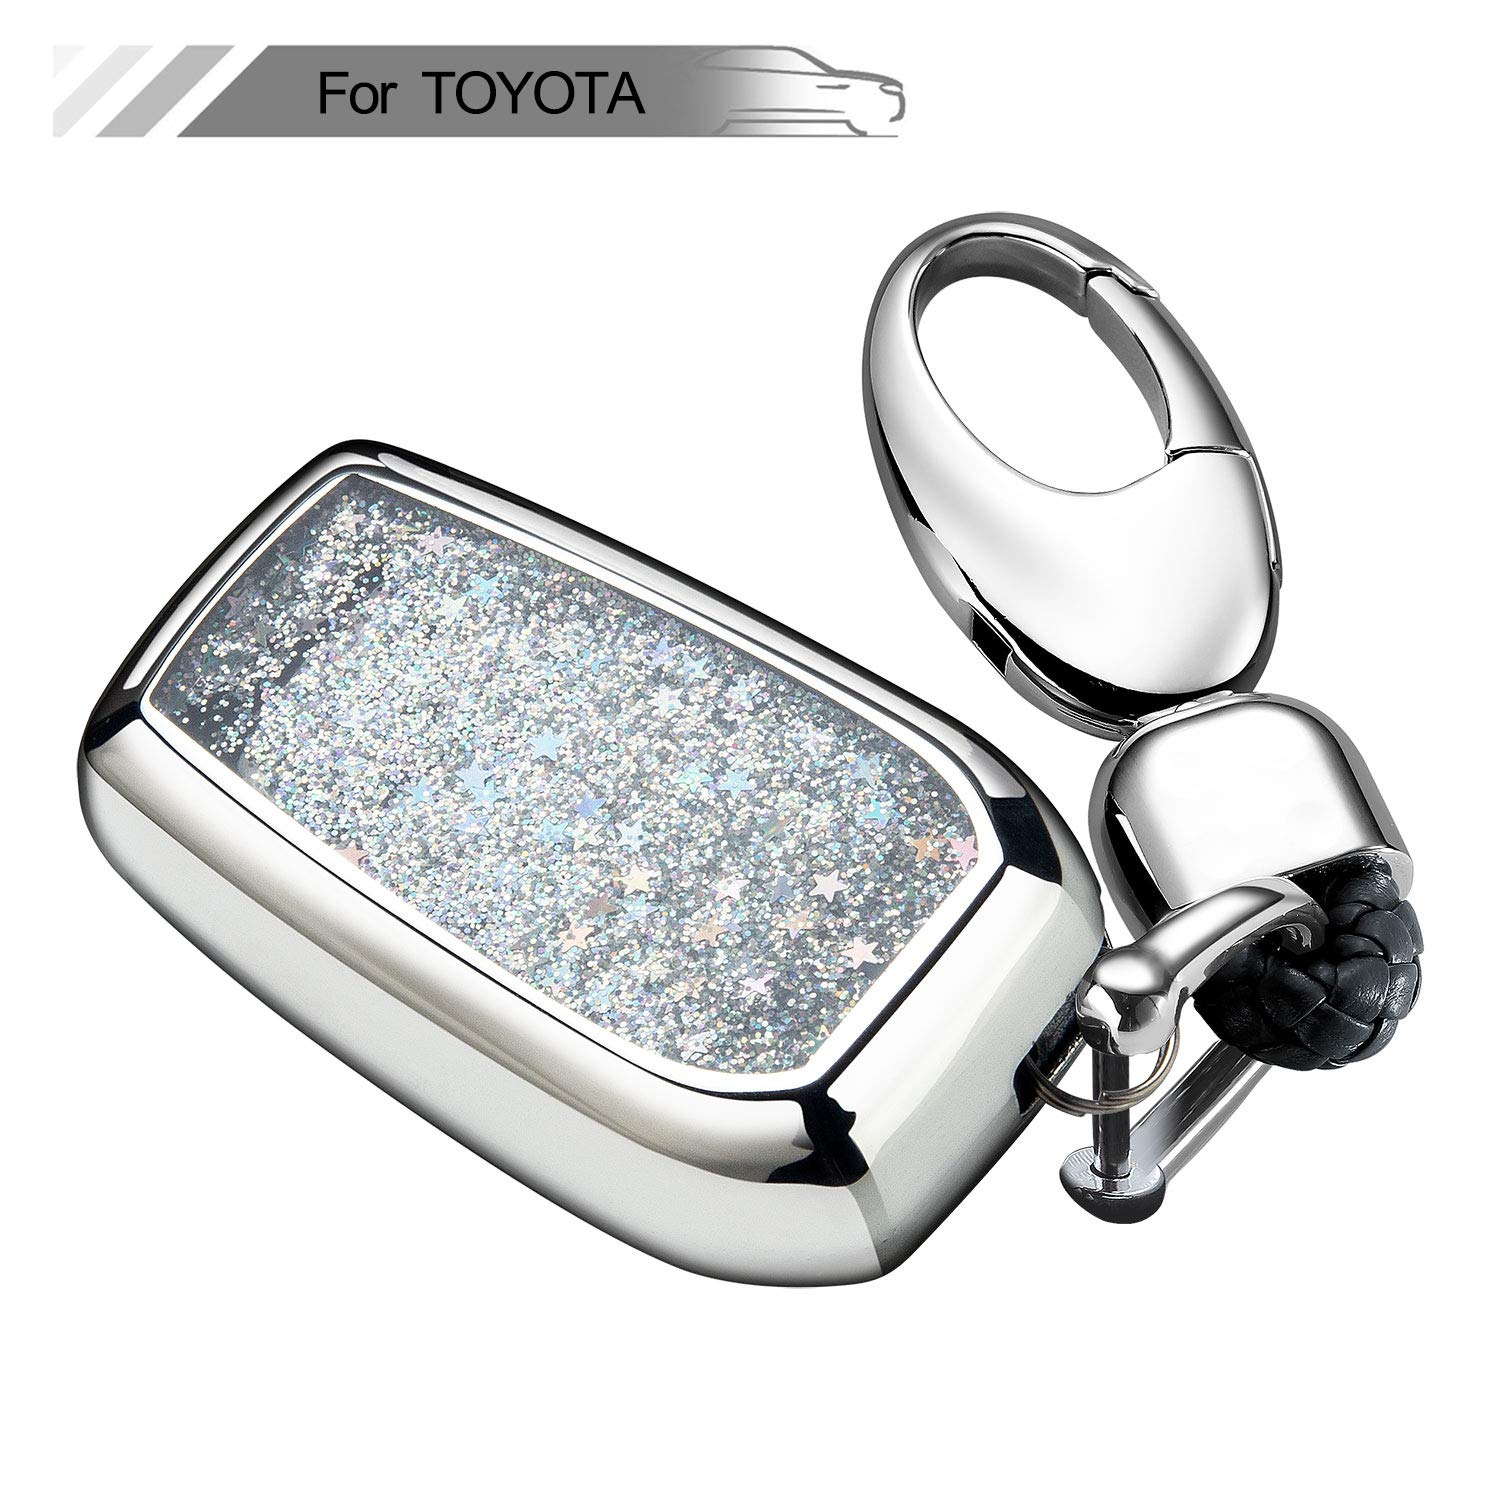 2ff5fa562476 Key Fob Cover with Glitter Liquid Quicksand,Flowing Bling Sparkle Key Fob  Case Fit Keyless Entry of Toyota RAV4 Crown Hyun Prado Camry Prius Corolla  New ...